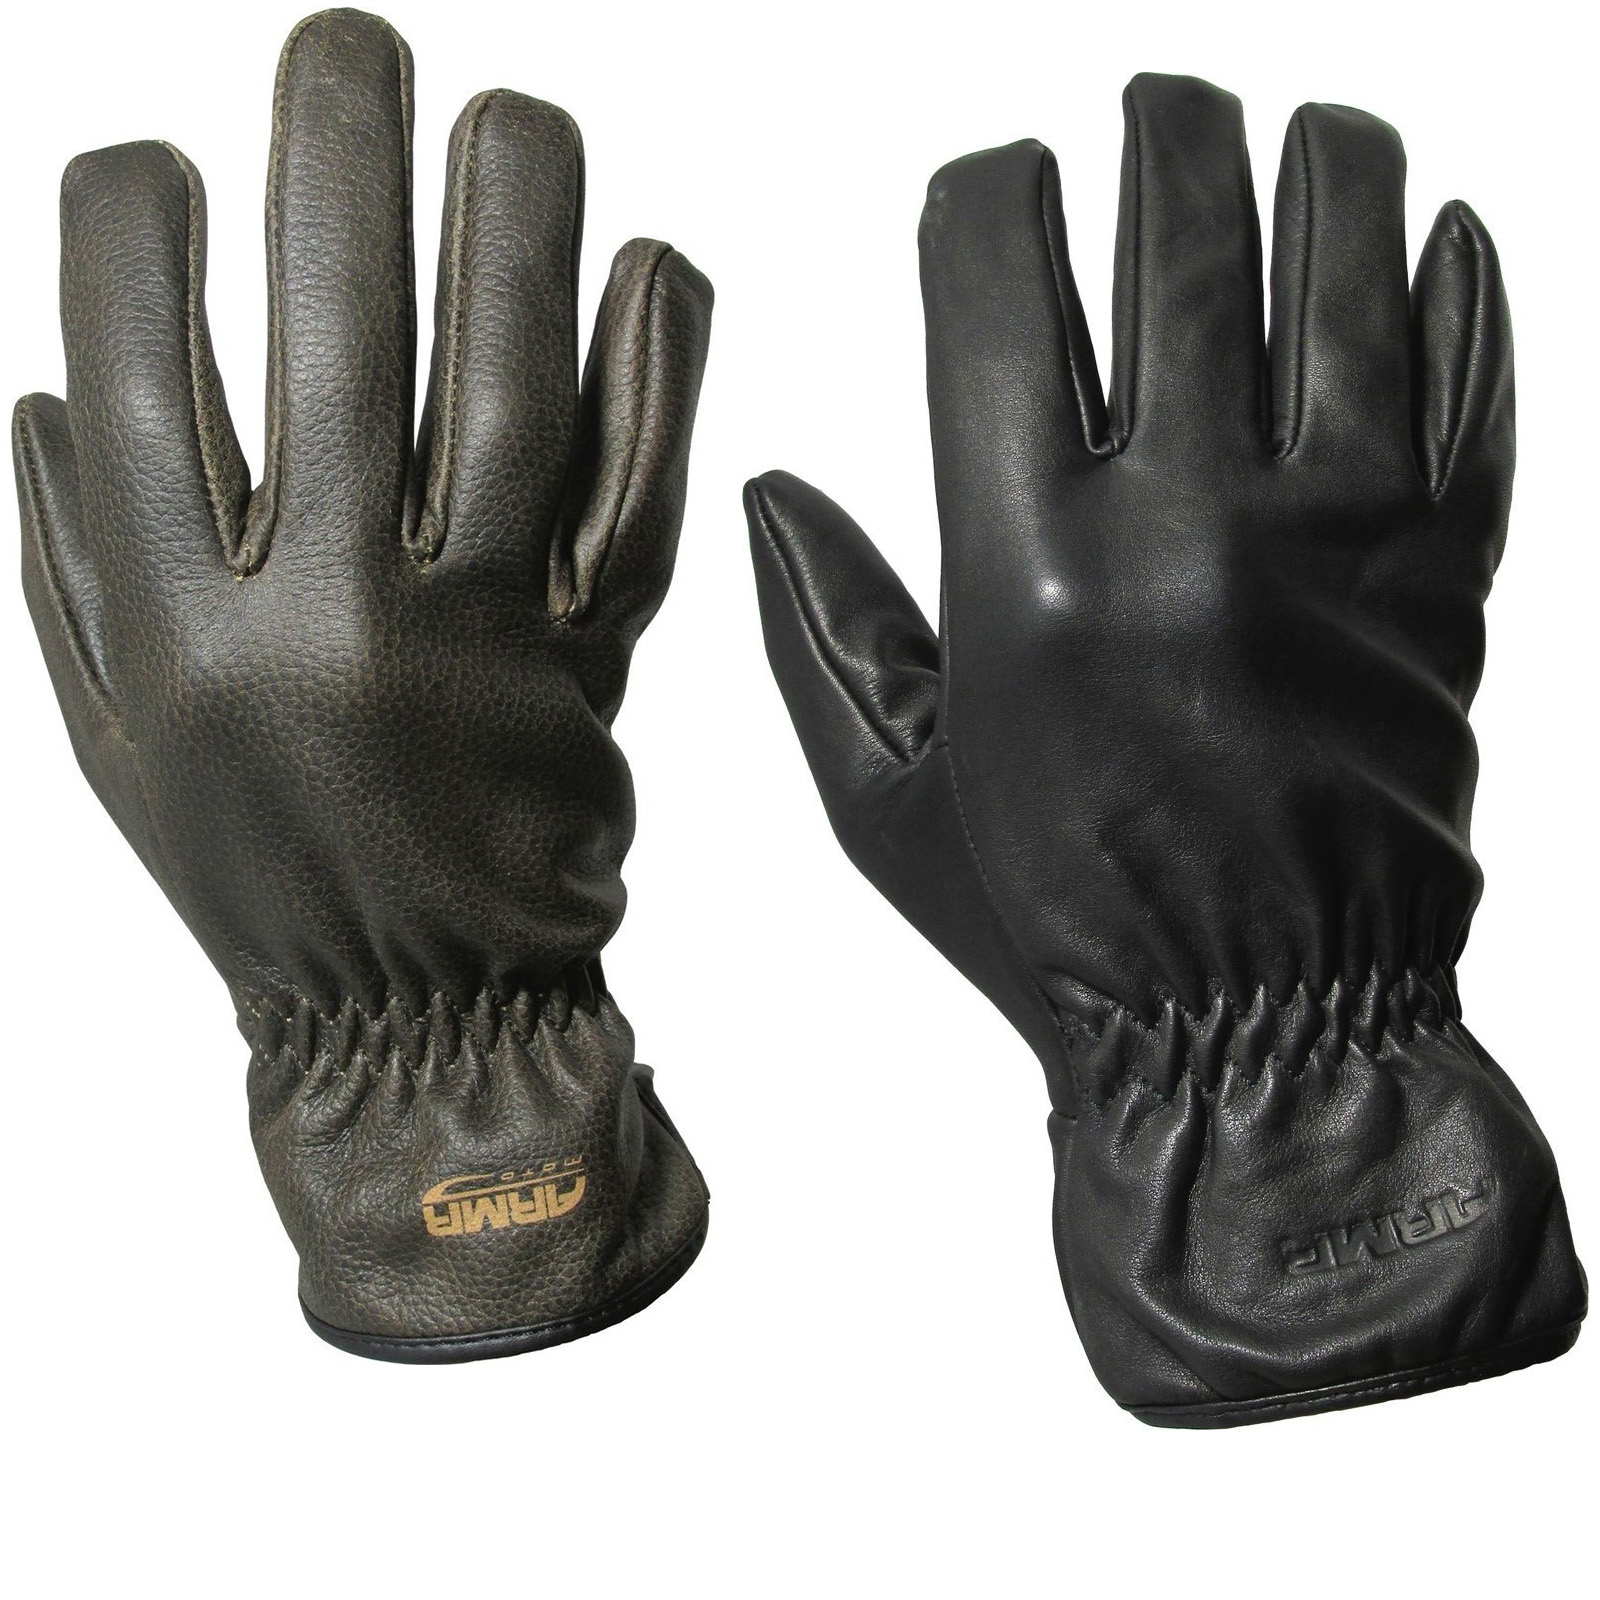 Motorcycle gloves cruiser - Armr Moto C425 Leather Motorcycle Gloves